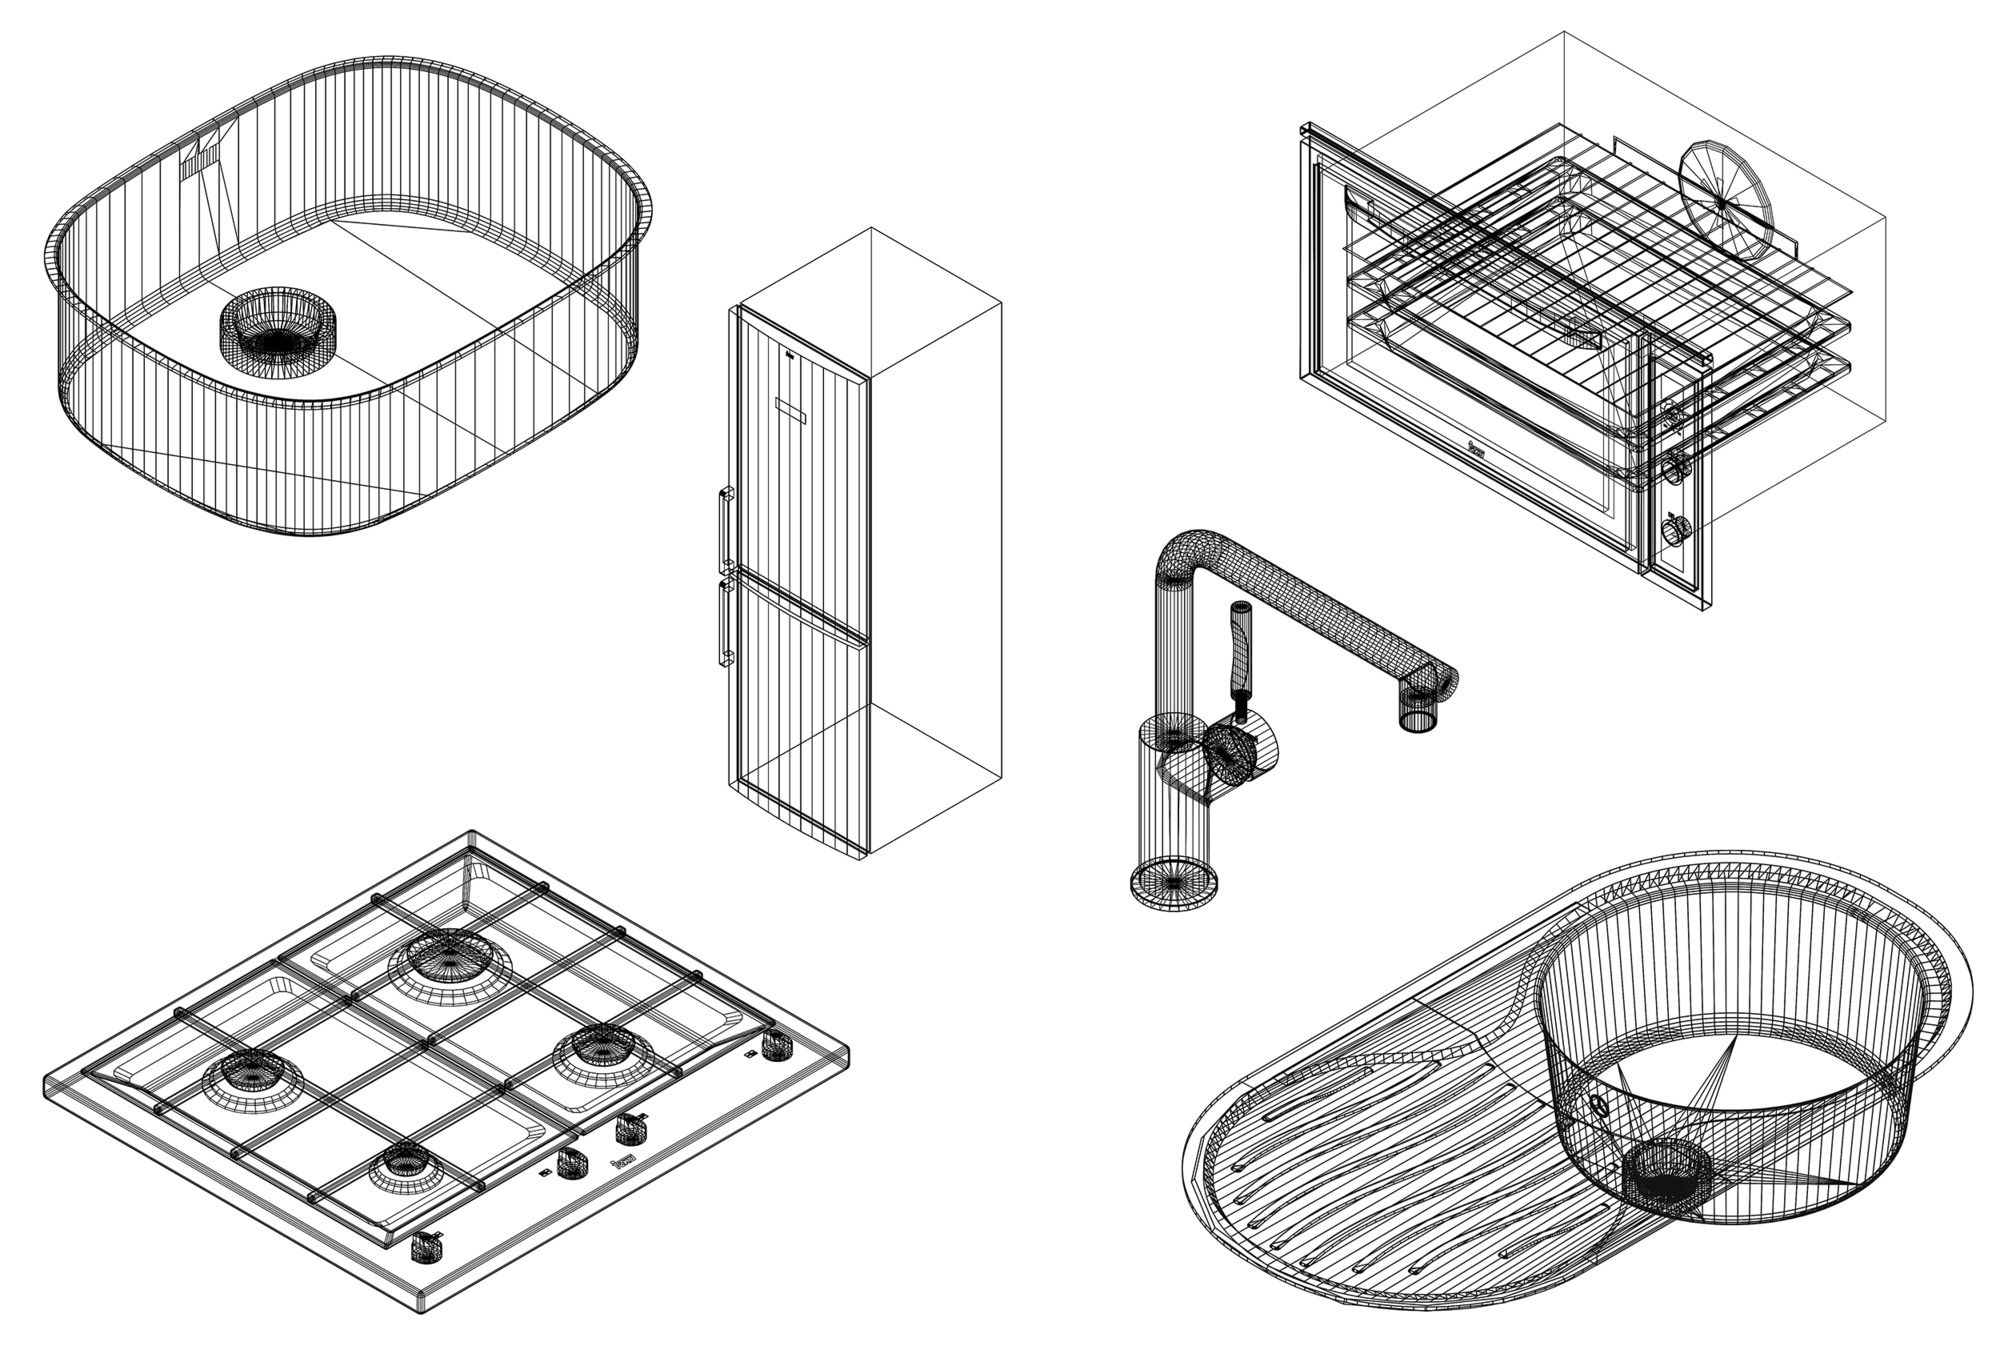 Stoves Sinks And Refrigerators Downloadable Cad Blocks For